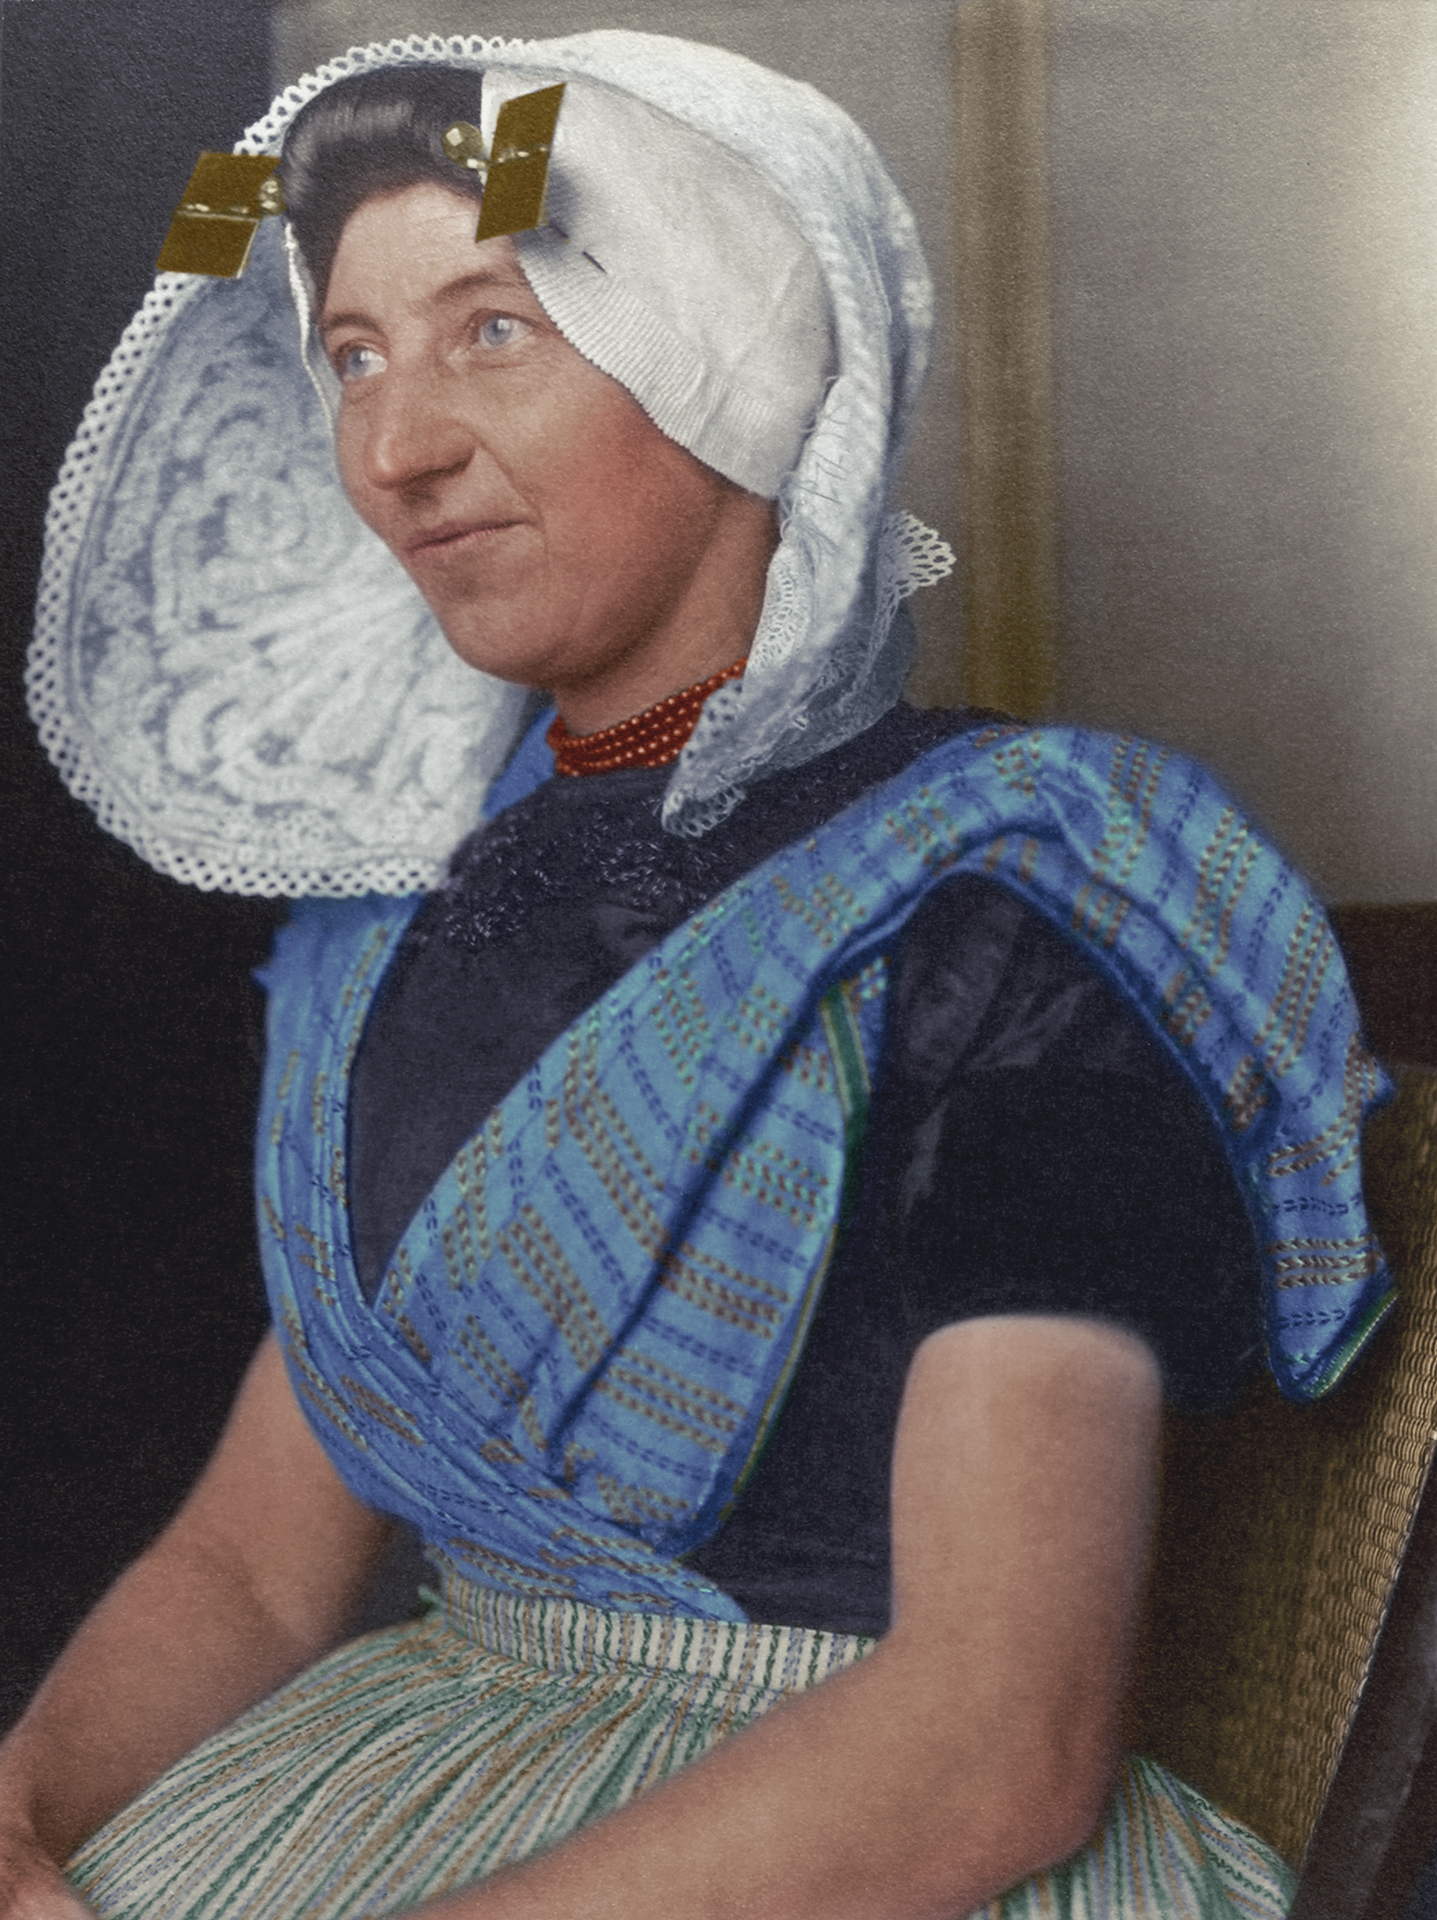 "c. 1910 ""Dutch woman."" The large bonnet which arguably is one of the most recognisable aspects of Dutch traditional dress was usually made of white cotton or lace and sometimes had flaps or wings, and often came with a cap. The square stukken and golden pins denoted her marital status and that she was a Protestant. The rest of the costume, again like so many others came in distinctly regional variations were made from cotton, linen or wool, decorated with embroidered floral patterns. A sleeved bodice covered the top half of the body and came in a dark colour, contrasted by a colourful tunic as seen in this photograph."